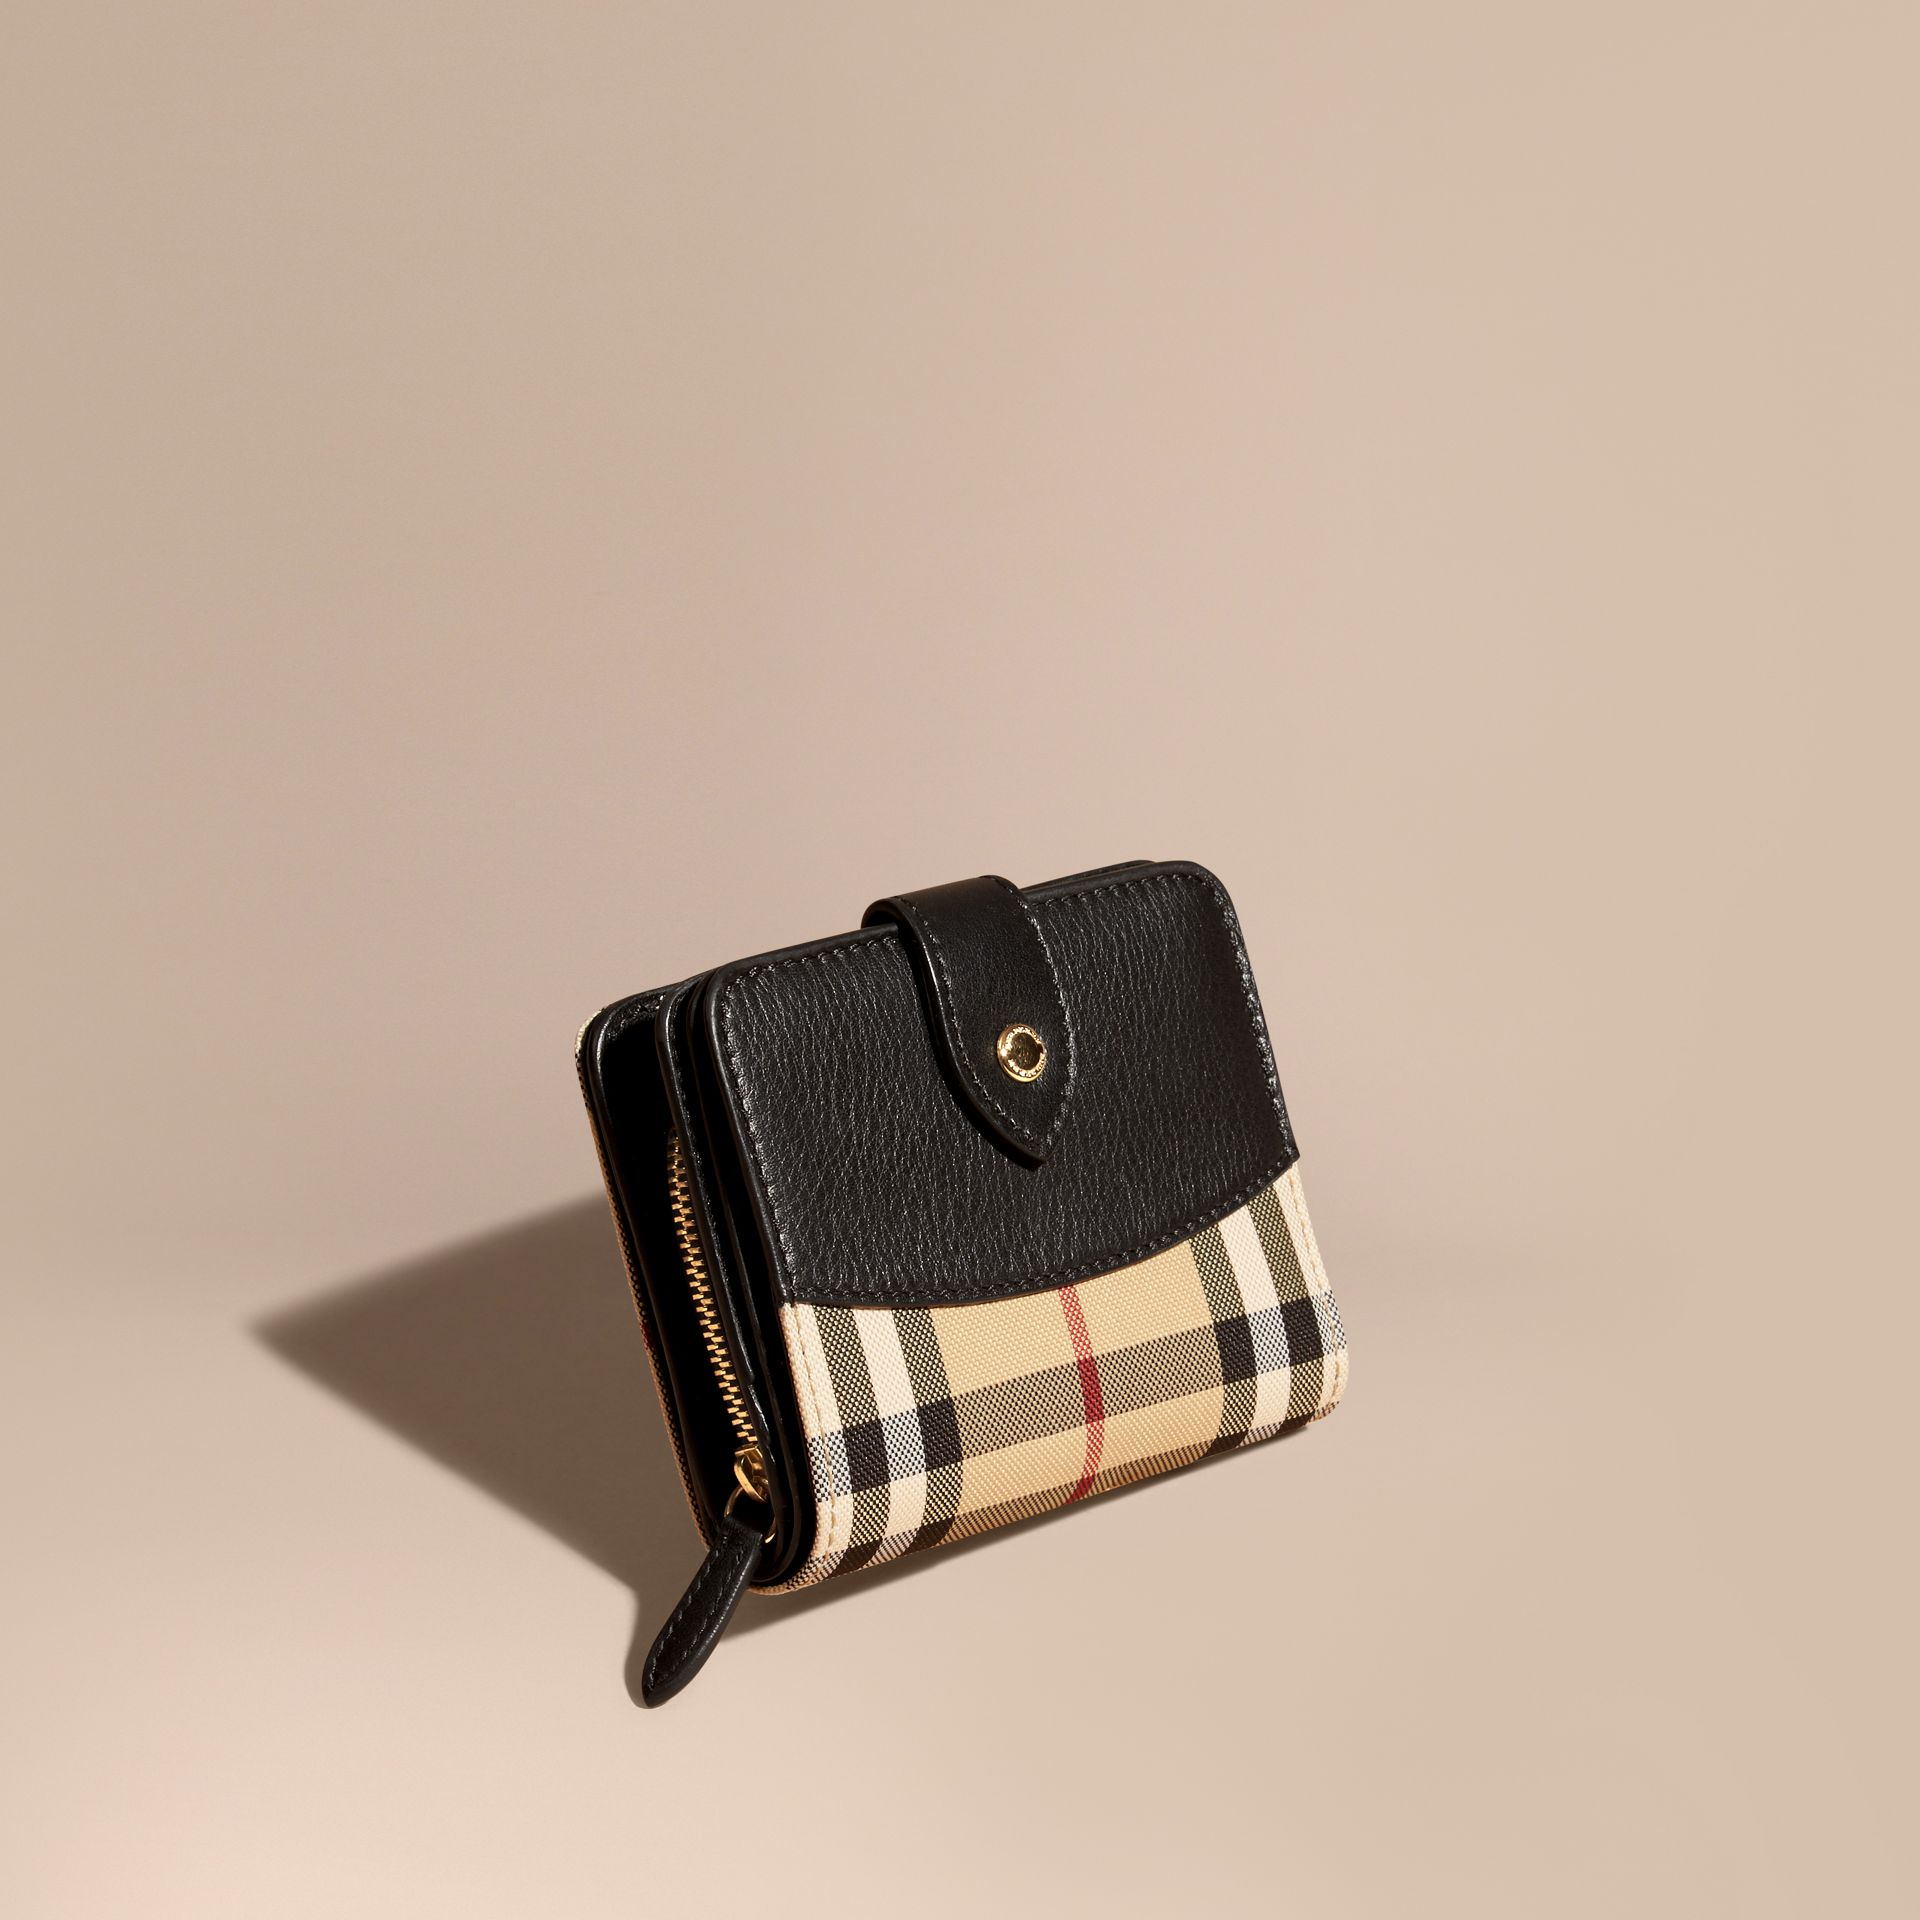 Black Horseferry Check and Leather Wallet Black - gallery image 1